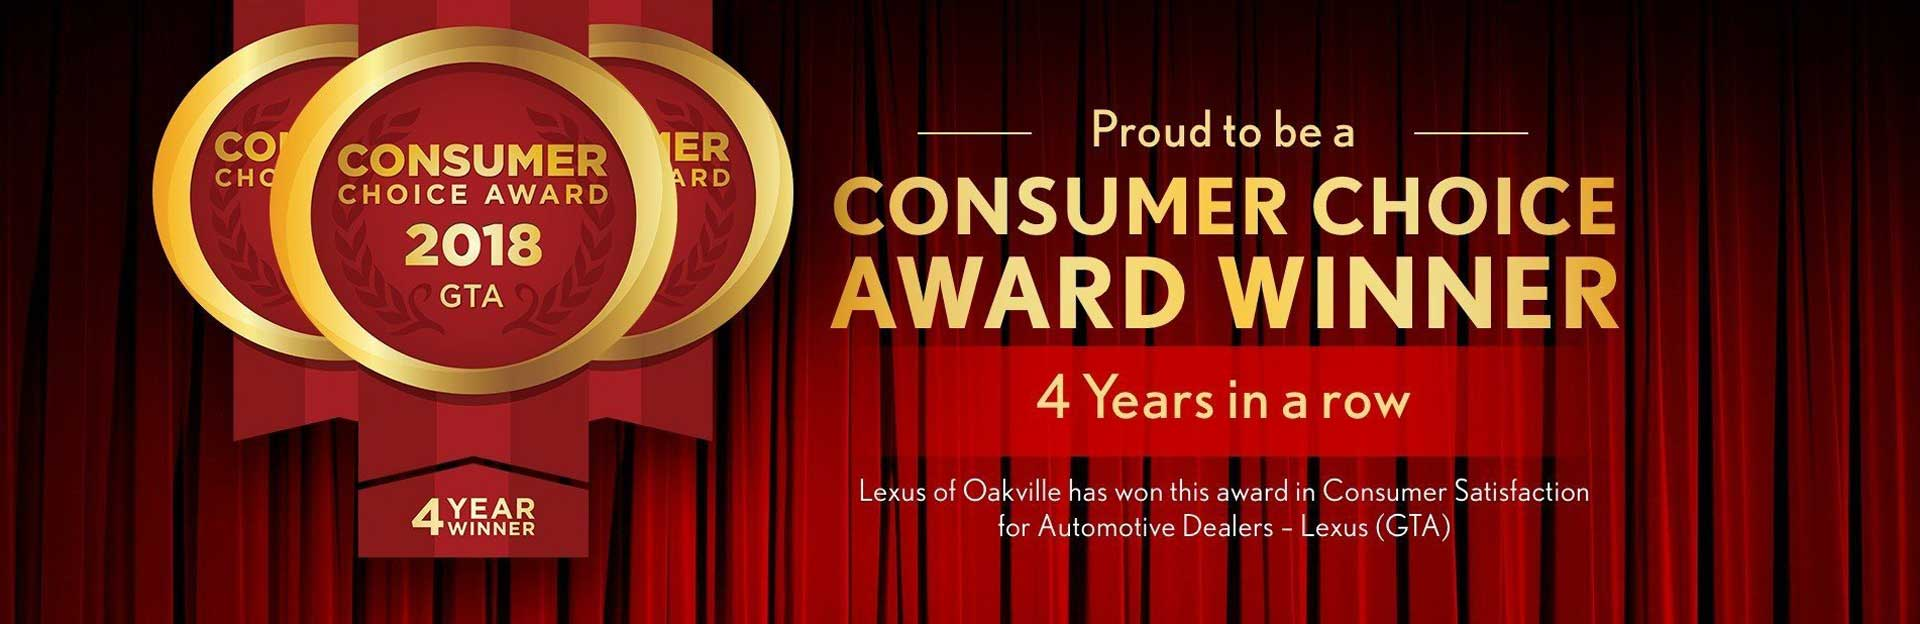 Consumer Choise Awards